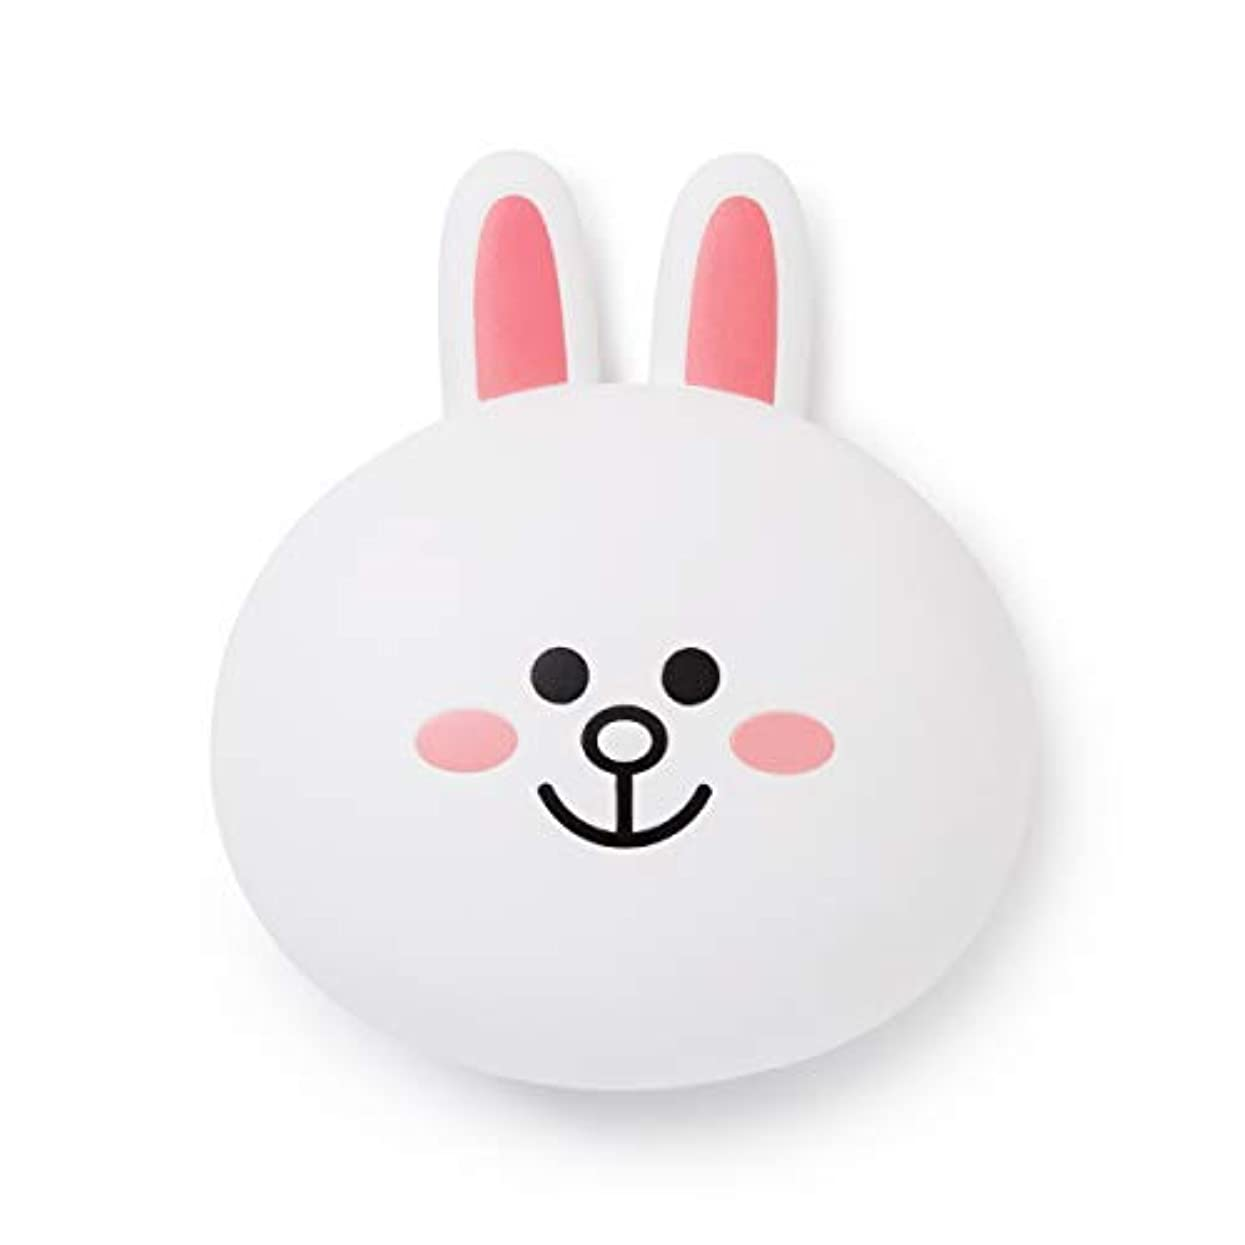 ソーセージしおれた透けるLINE FRIENDS Hair Brush Accessories - CONY Character Travel Comb Accessory with Mirror for Women, White [並行輸入品]